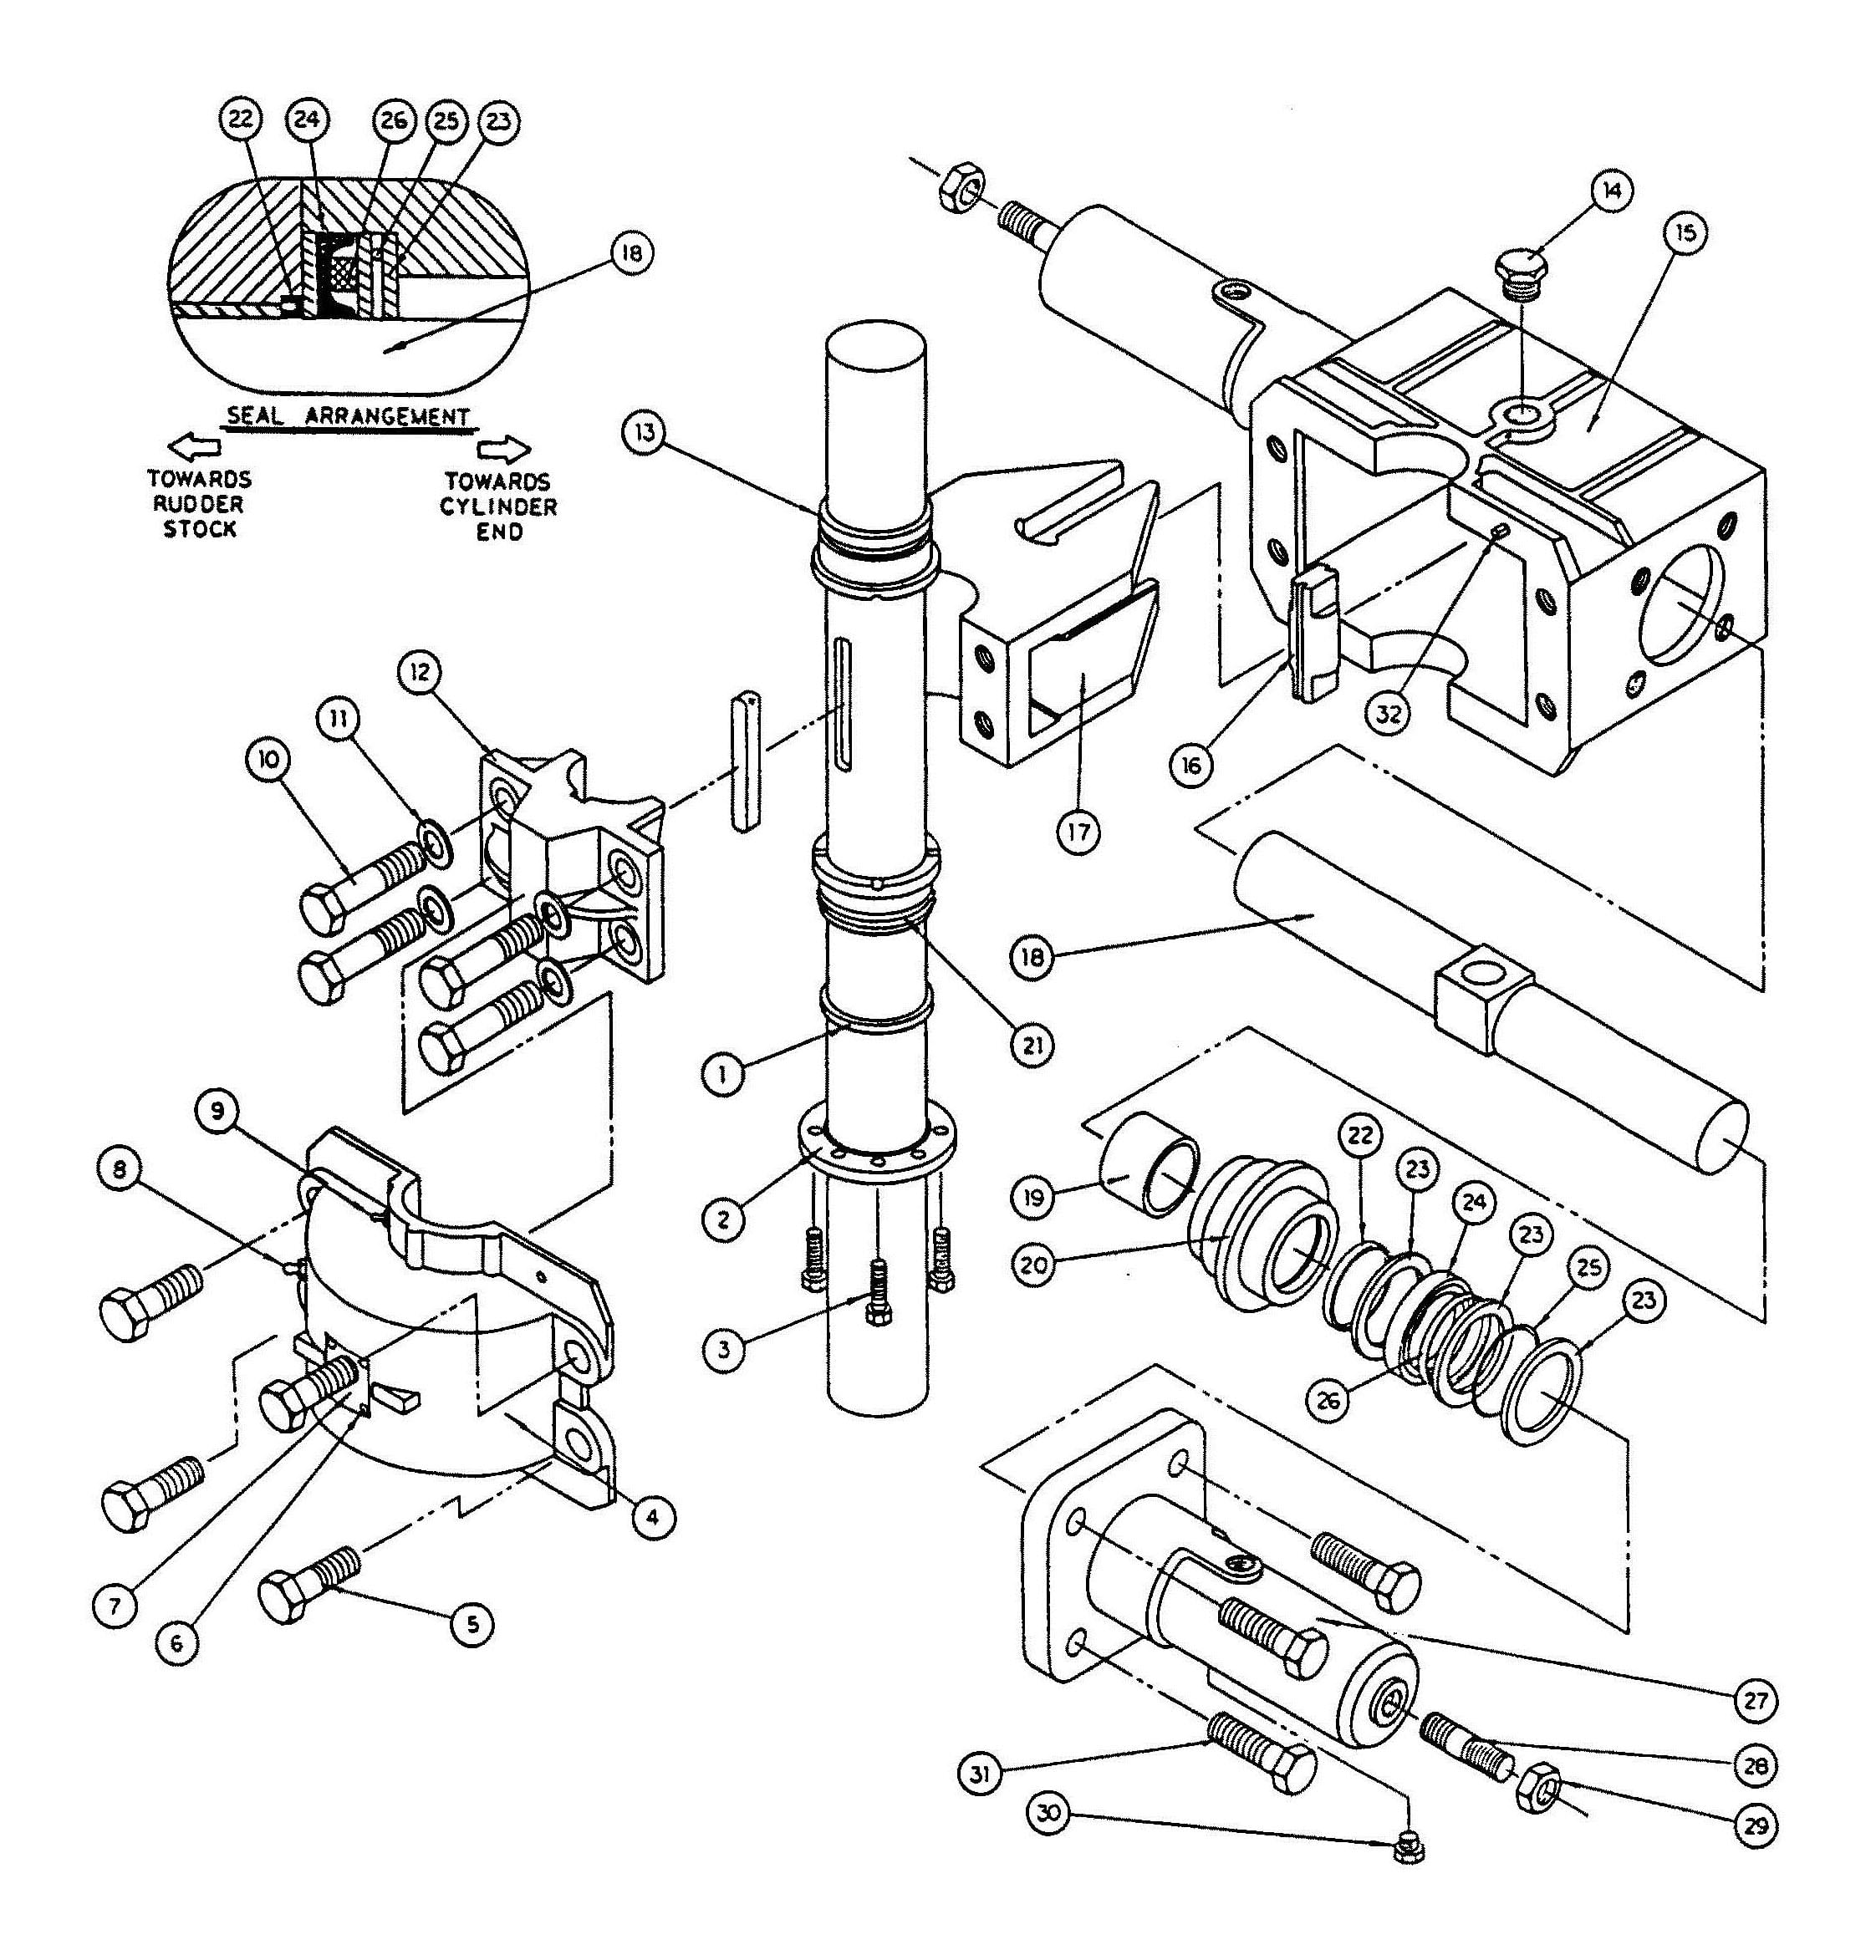 Model T12B and T13B Actuator Assembly Diagram